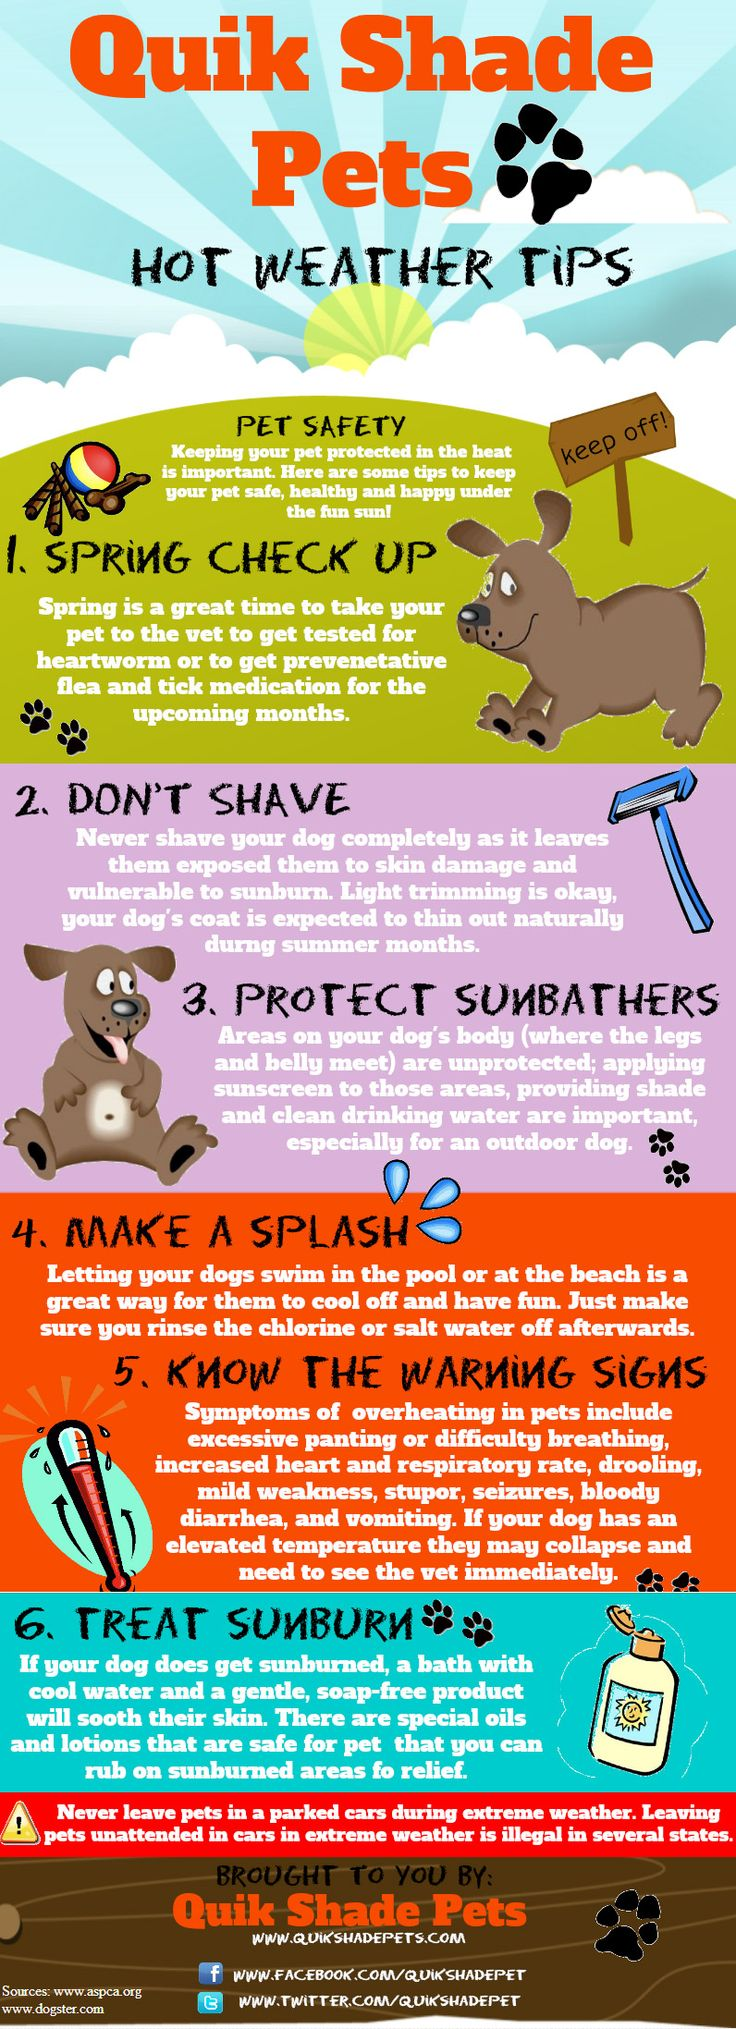 keep pets safe during hot weather